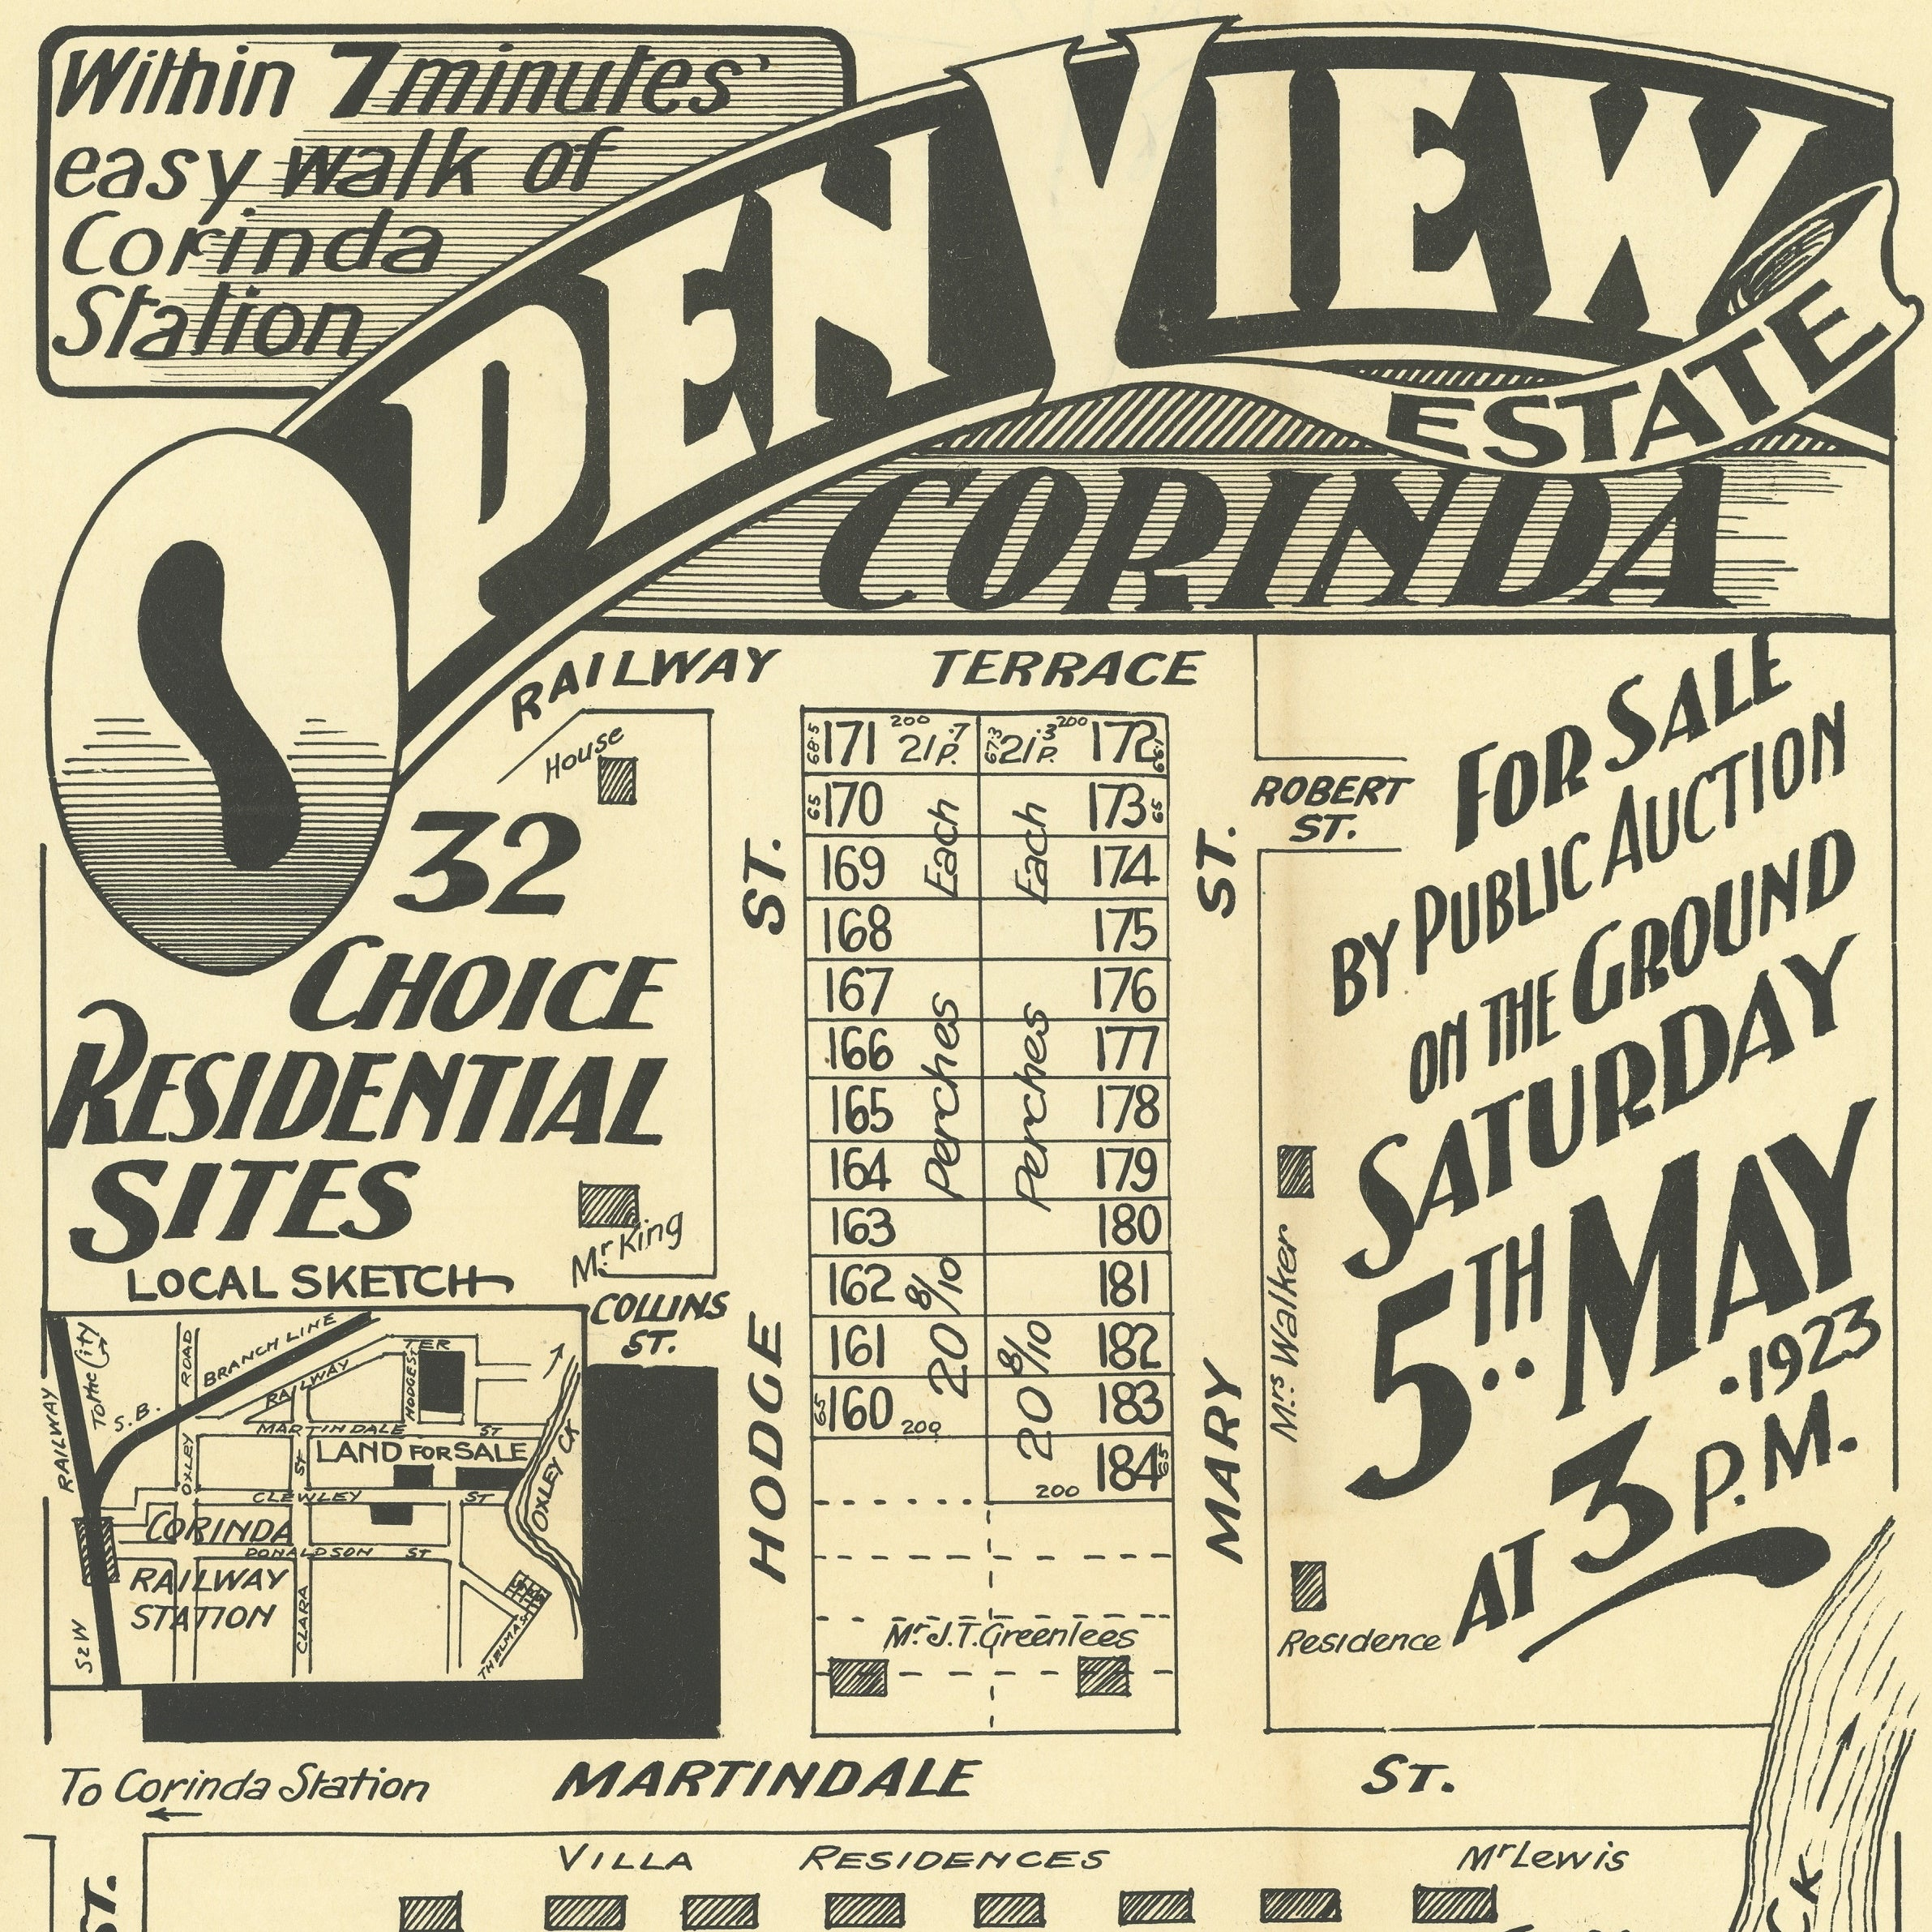 1923 Corinda - Open View Estate